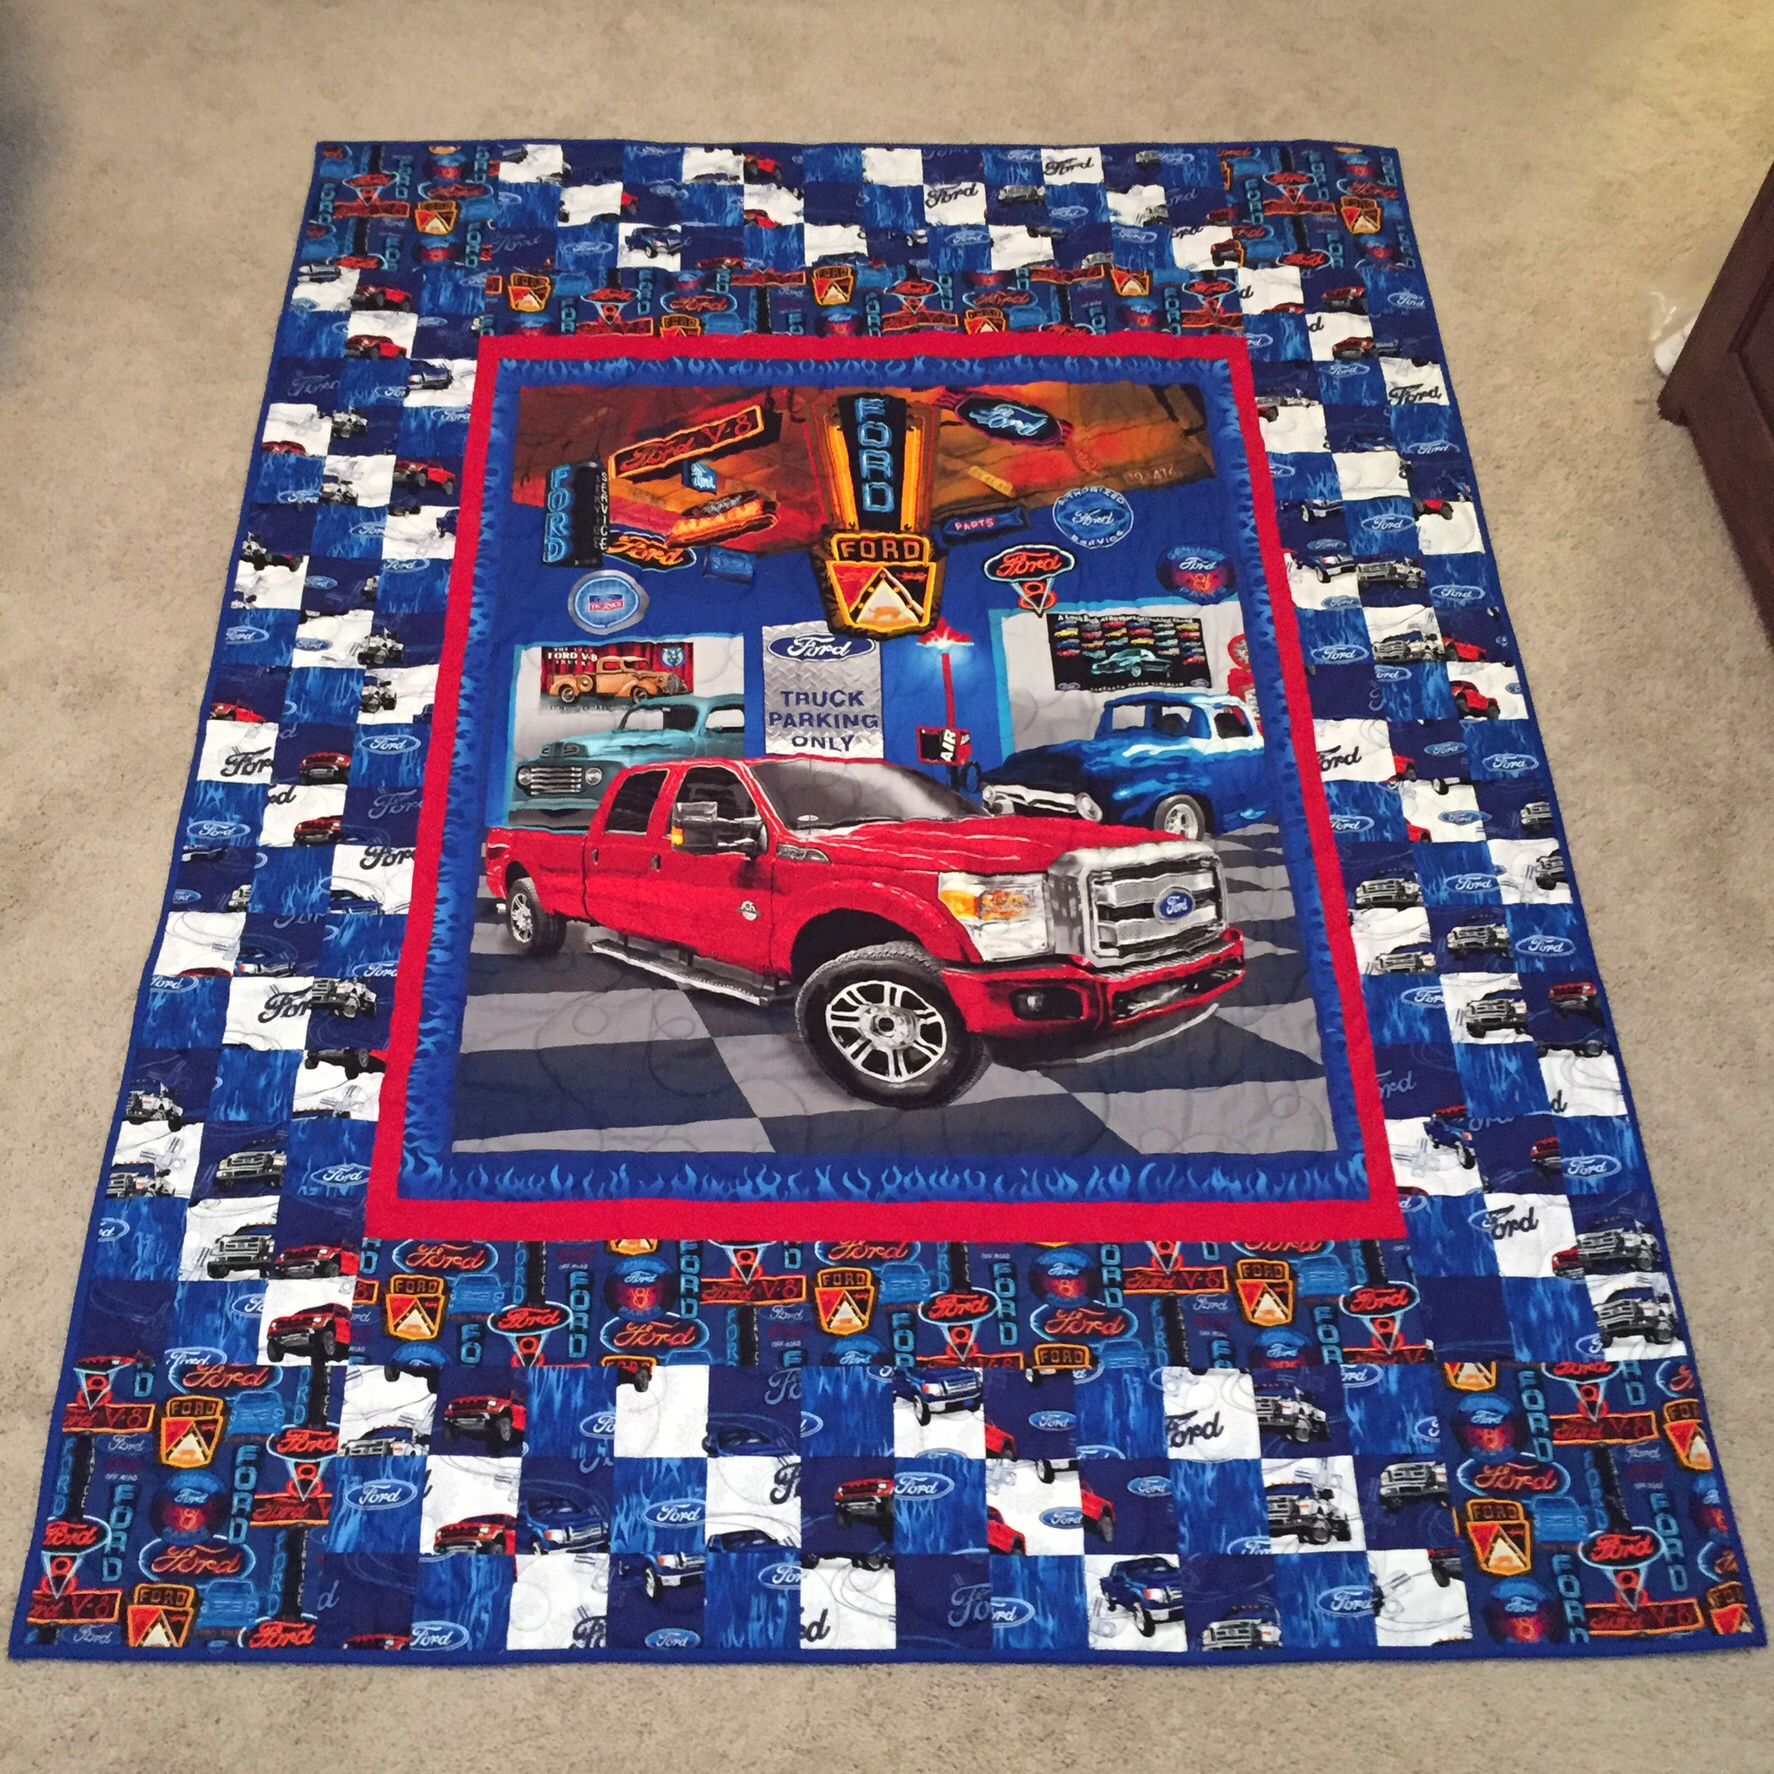 Ford truck lap quilt fabric panel quilts fabric panels man quilt baby quilt